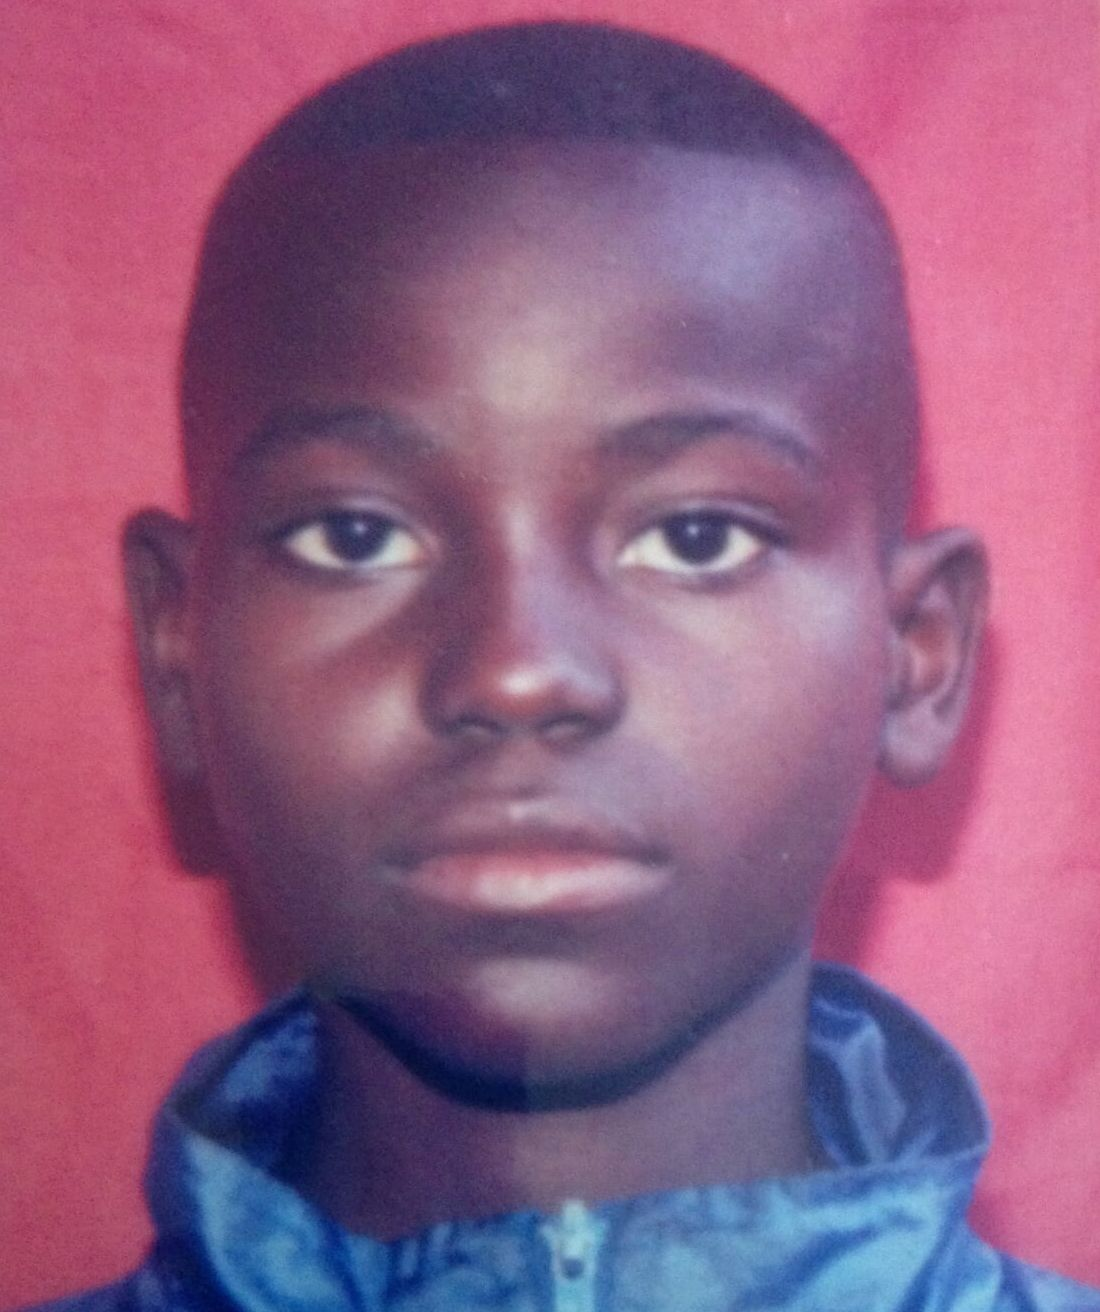 Mardoche Yembi, who is now 27, was abused as a child